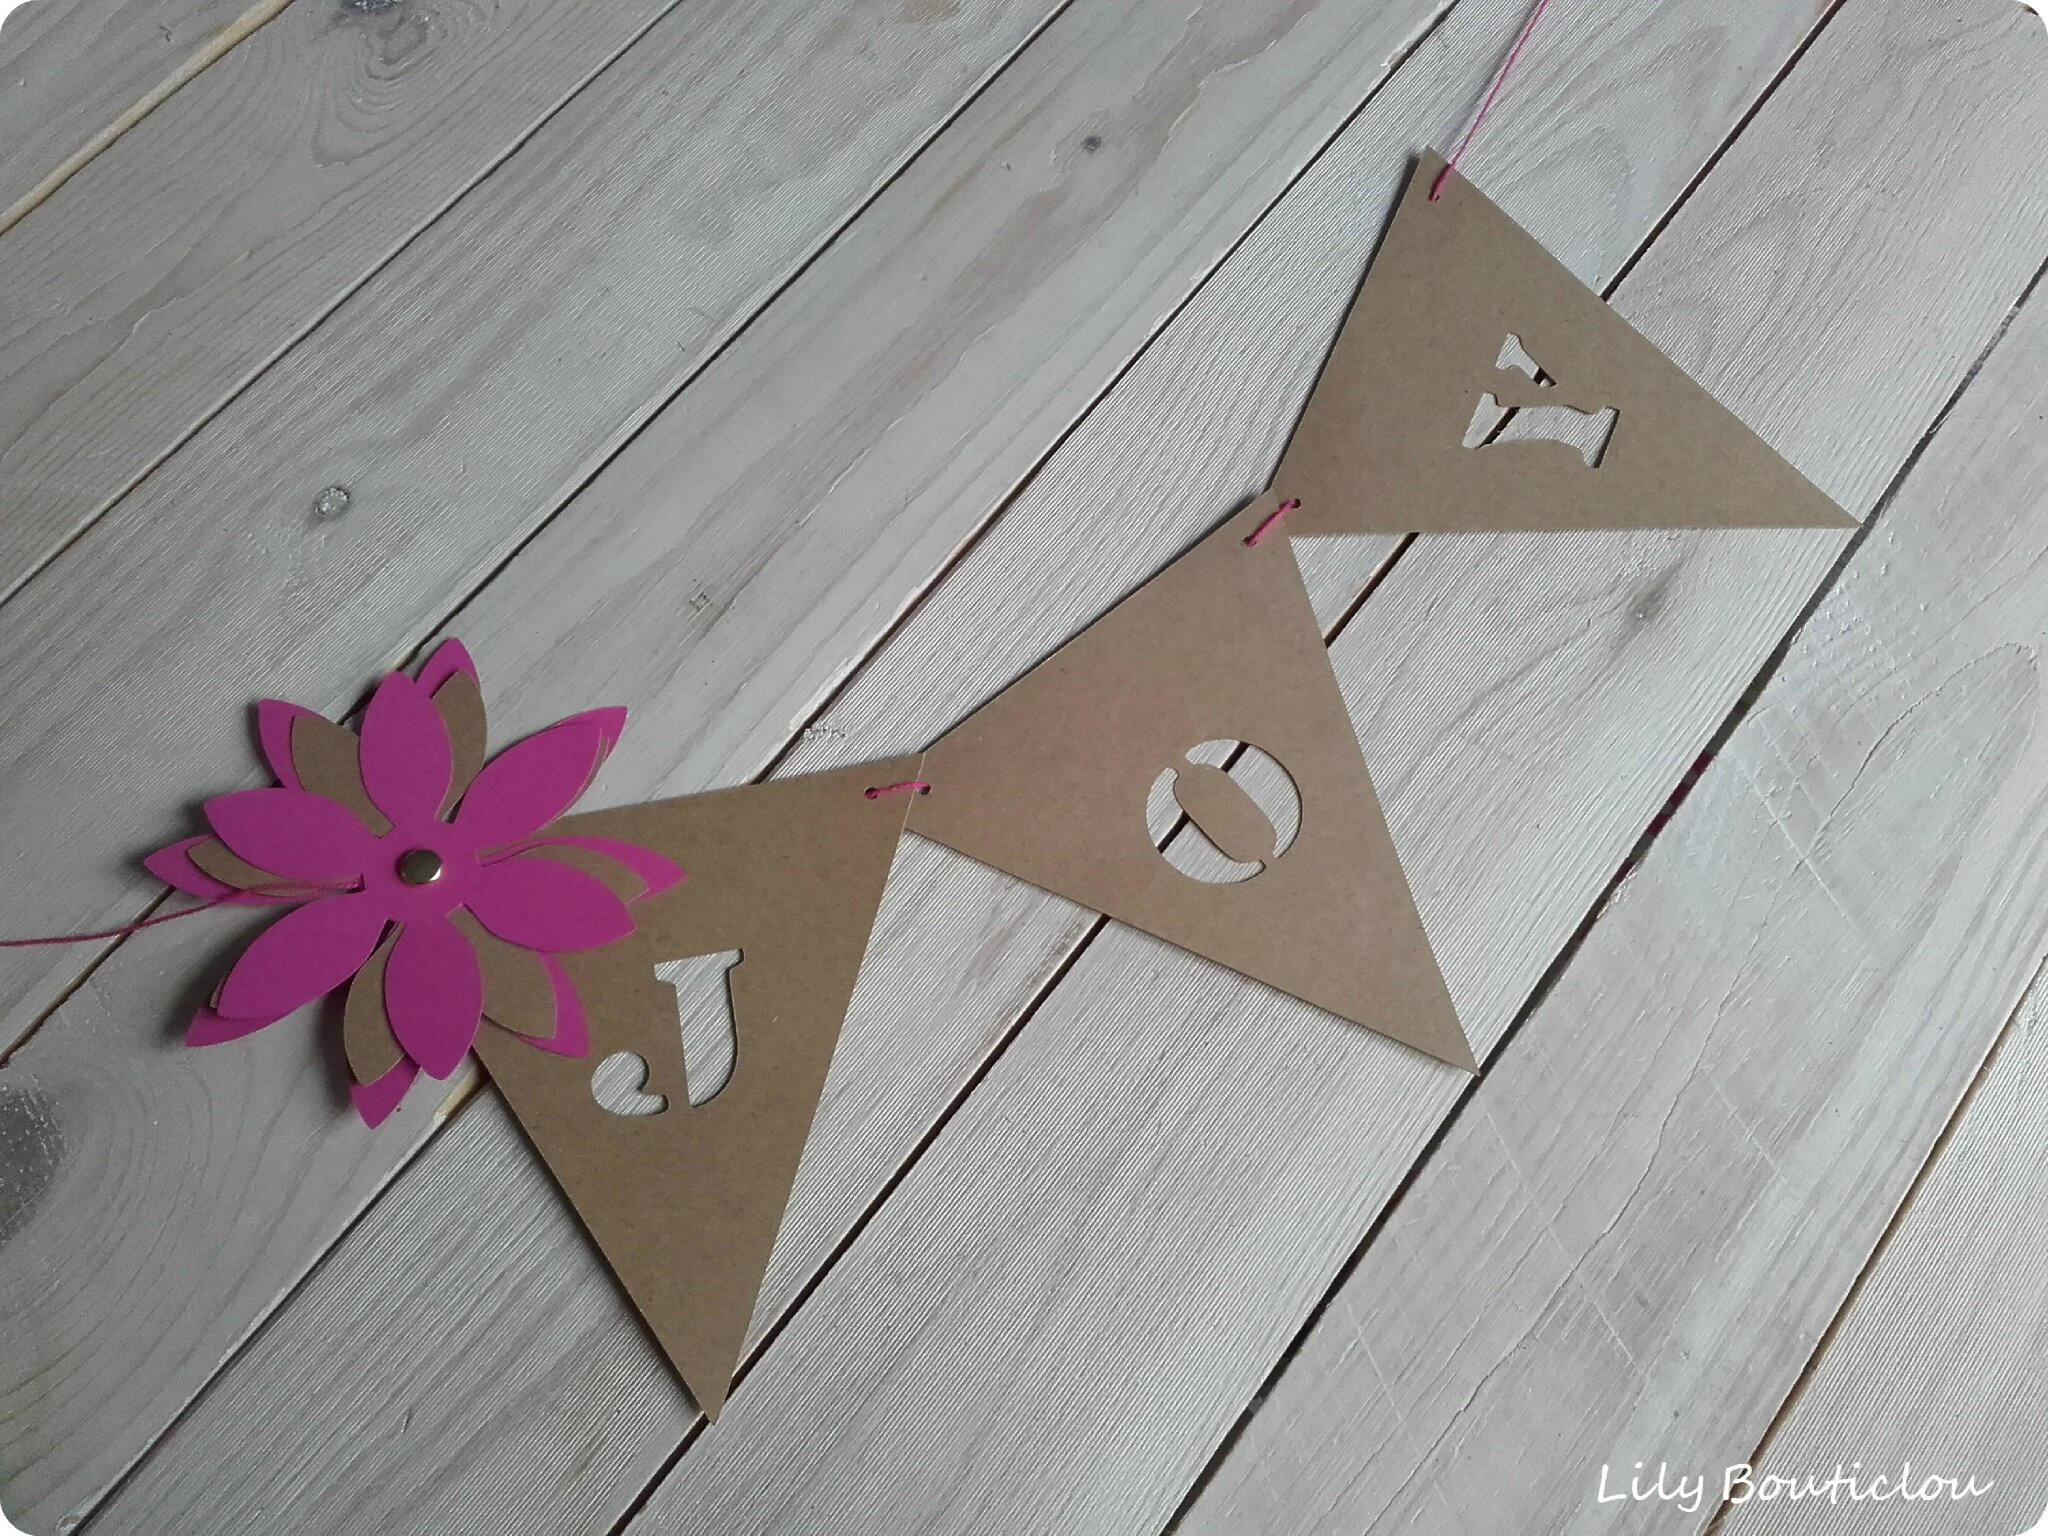 guirlande fanions carton pennant garland cardboard joy silhouette cameo lilybouticlou